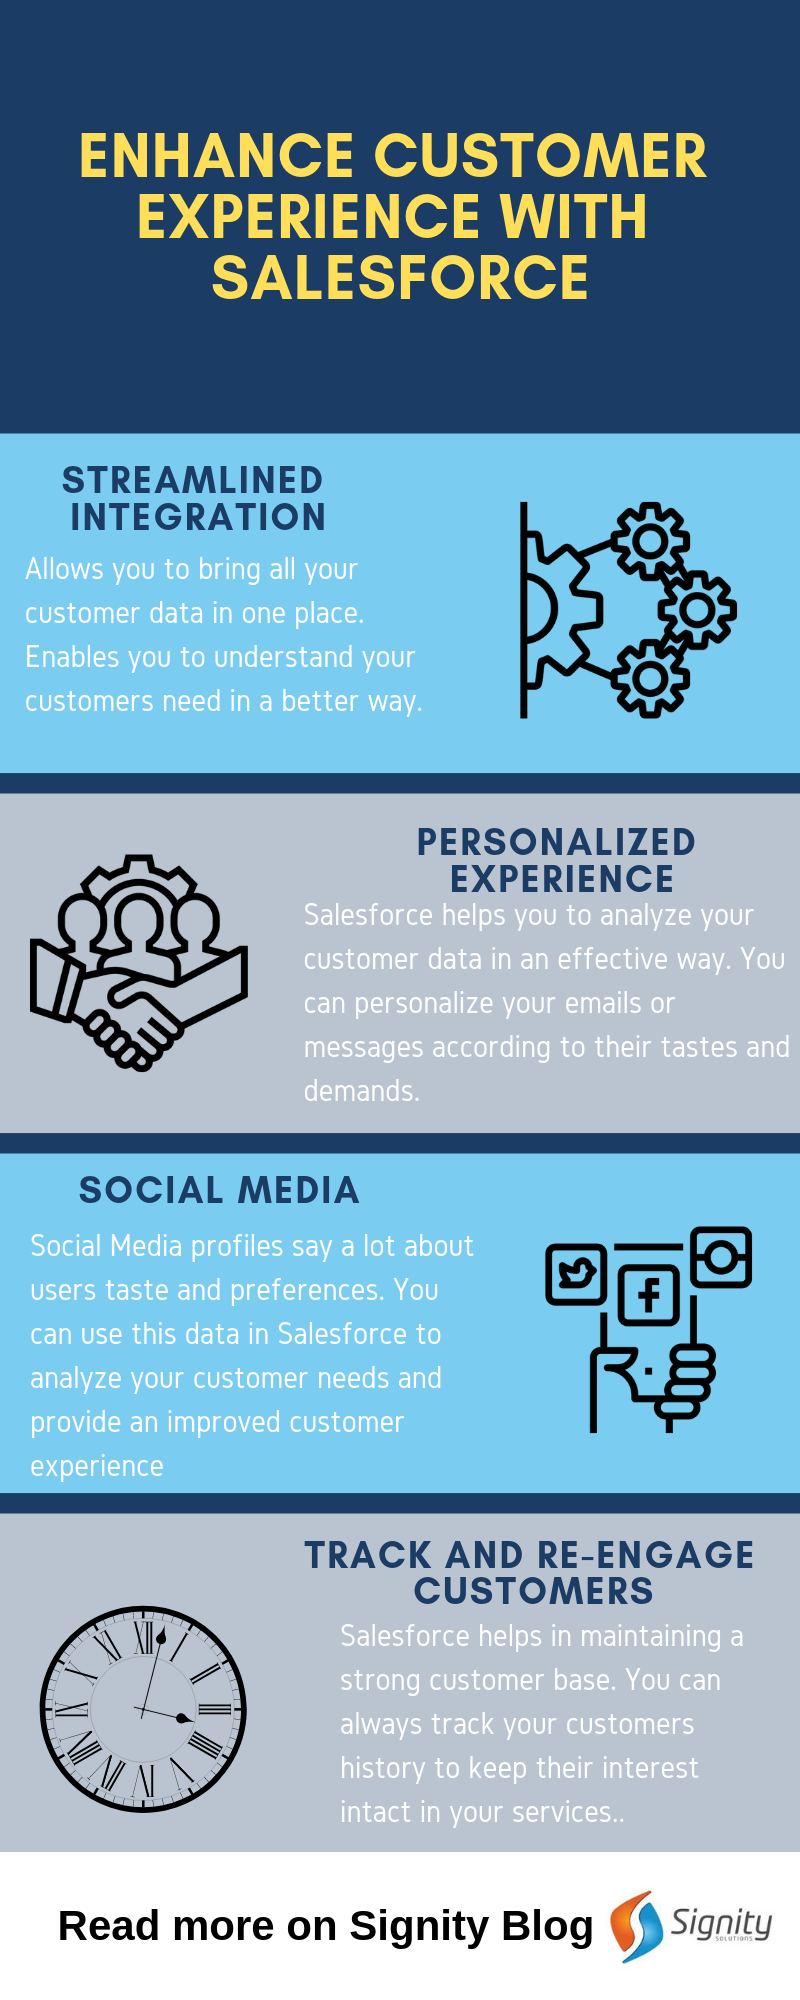 Enhance Customer Experience With Salesforce